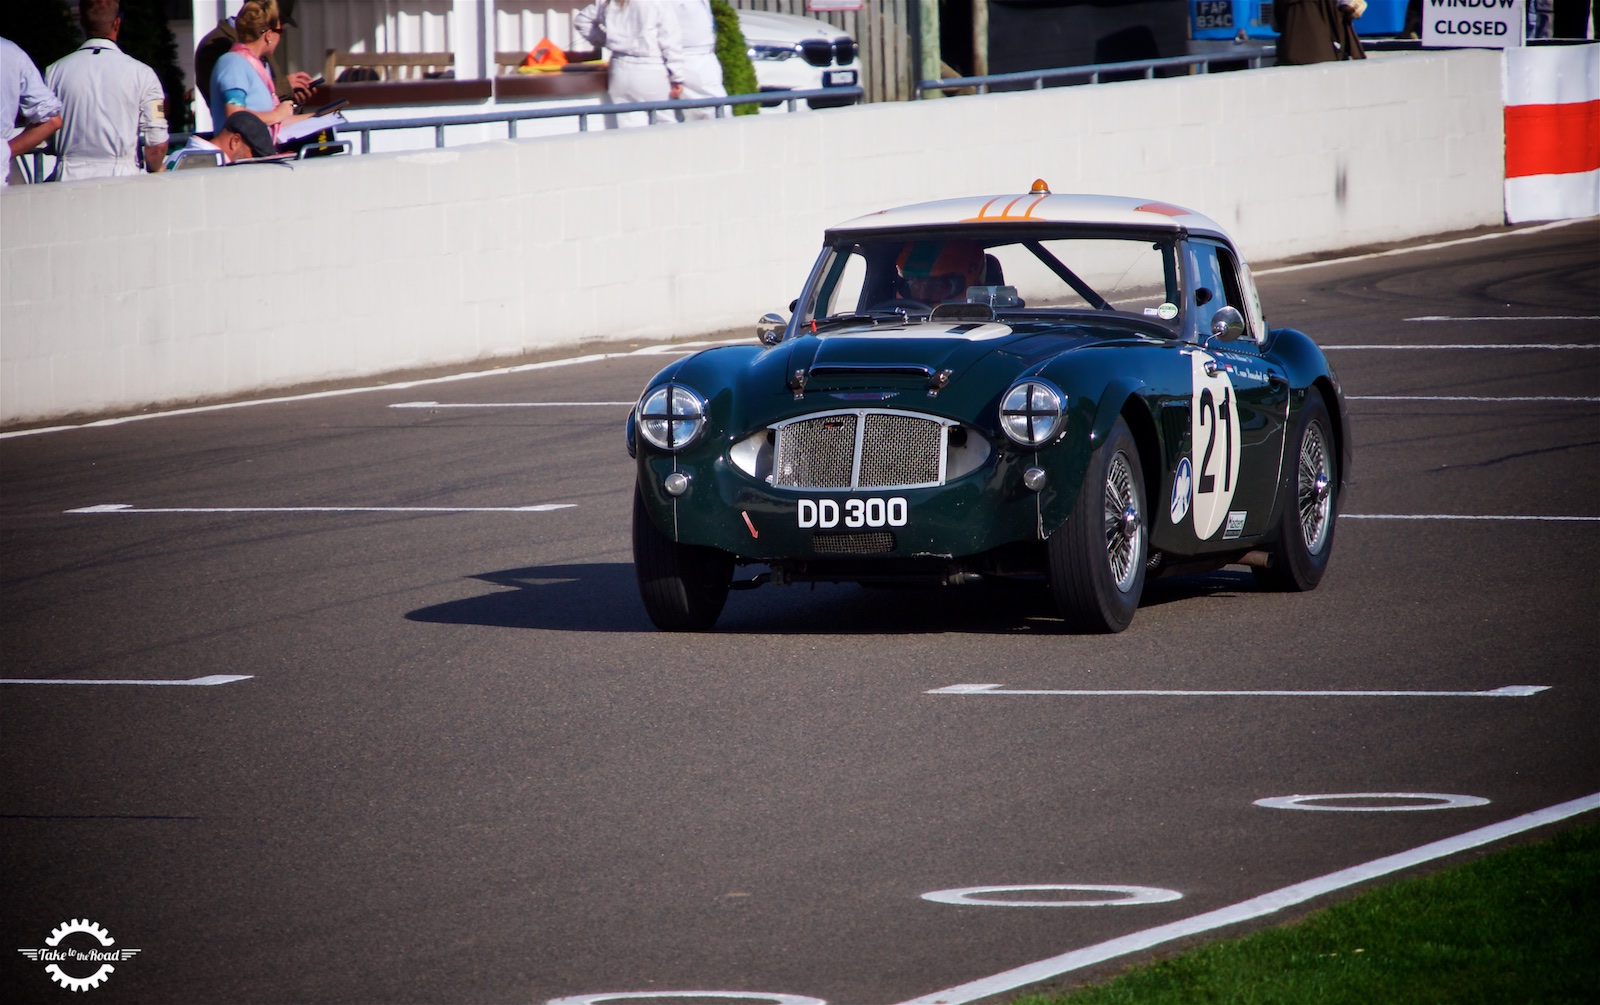 The Goodwood Revival 2018 - Relentless and Glorious